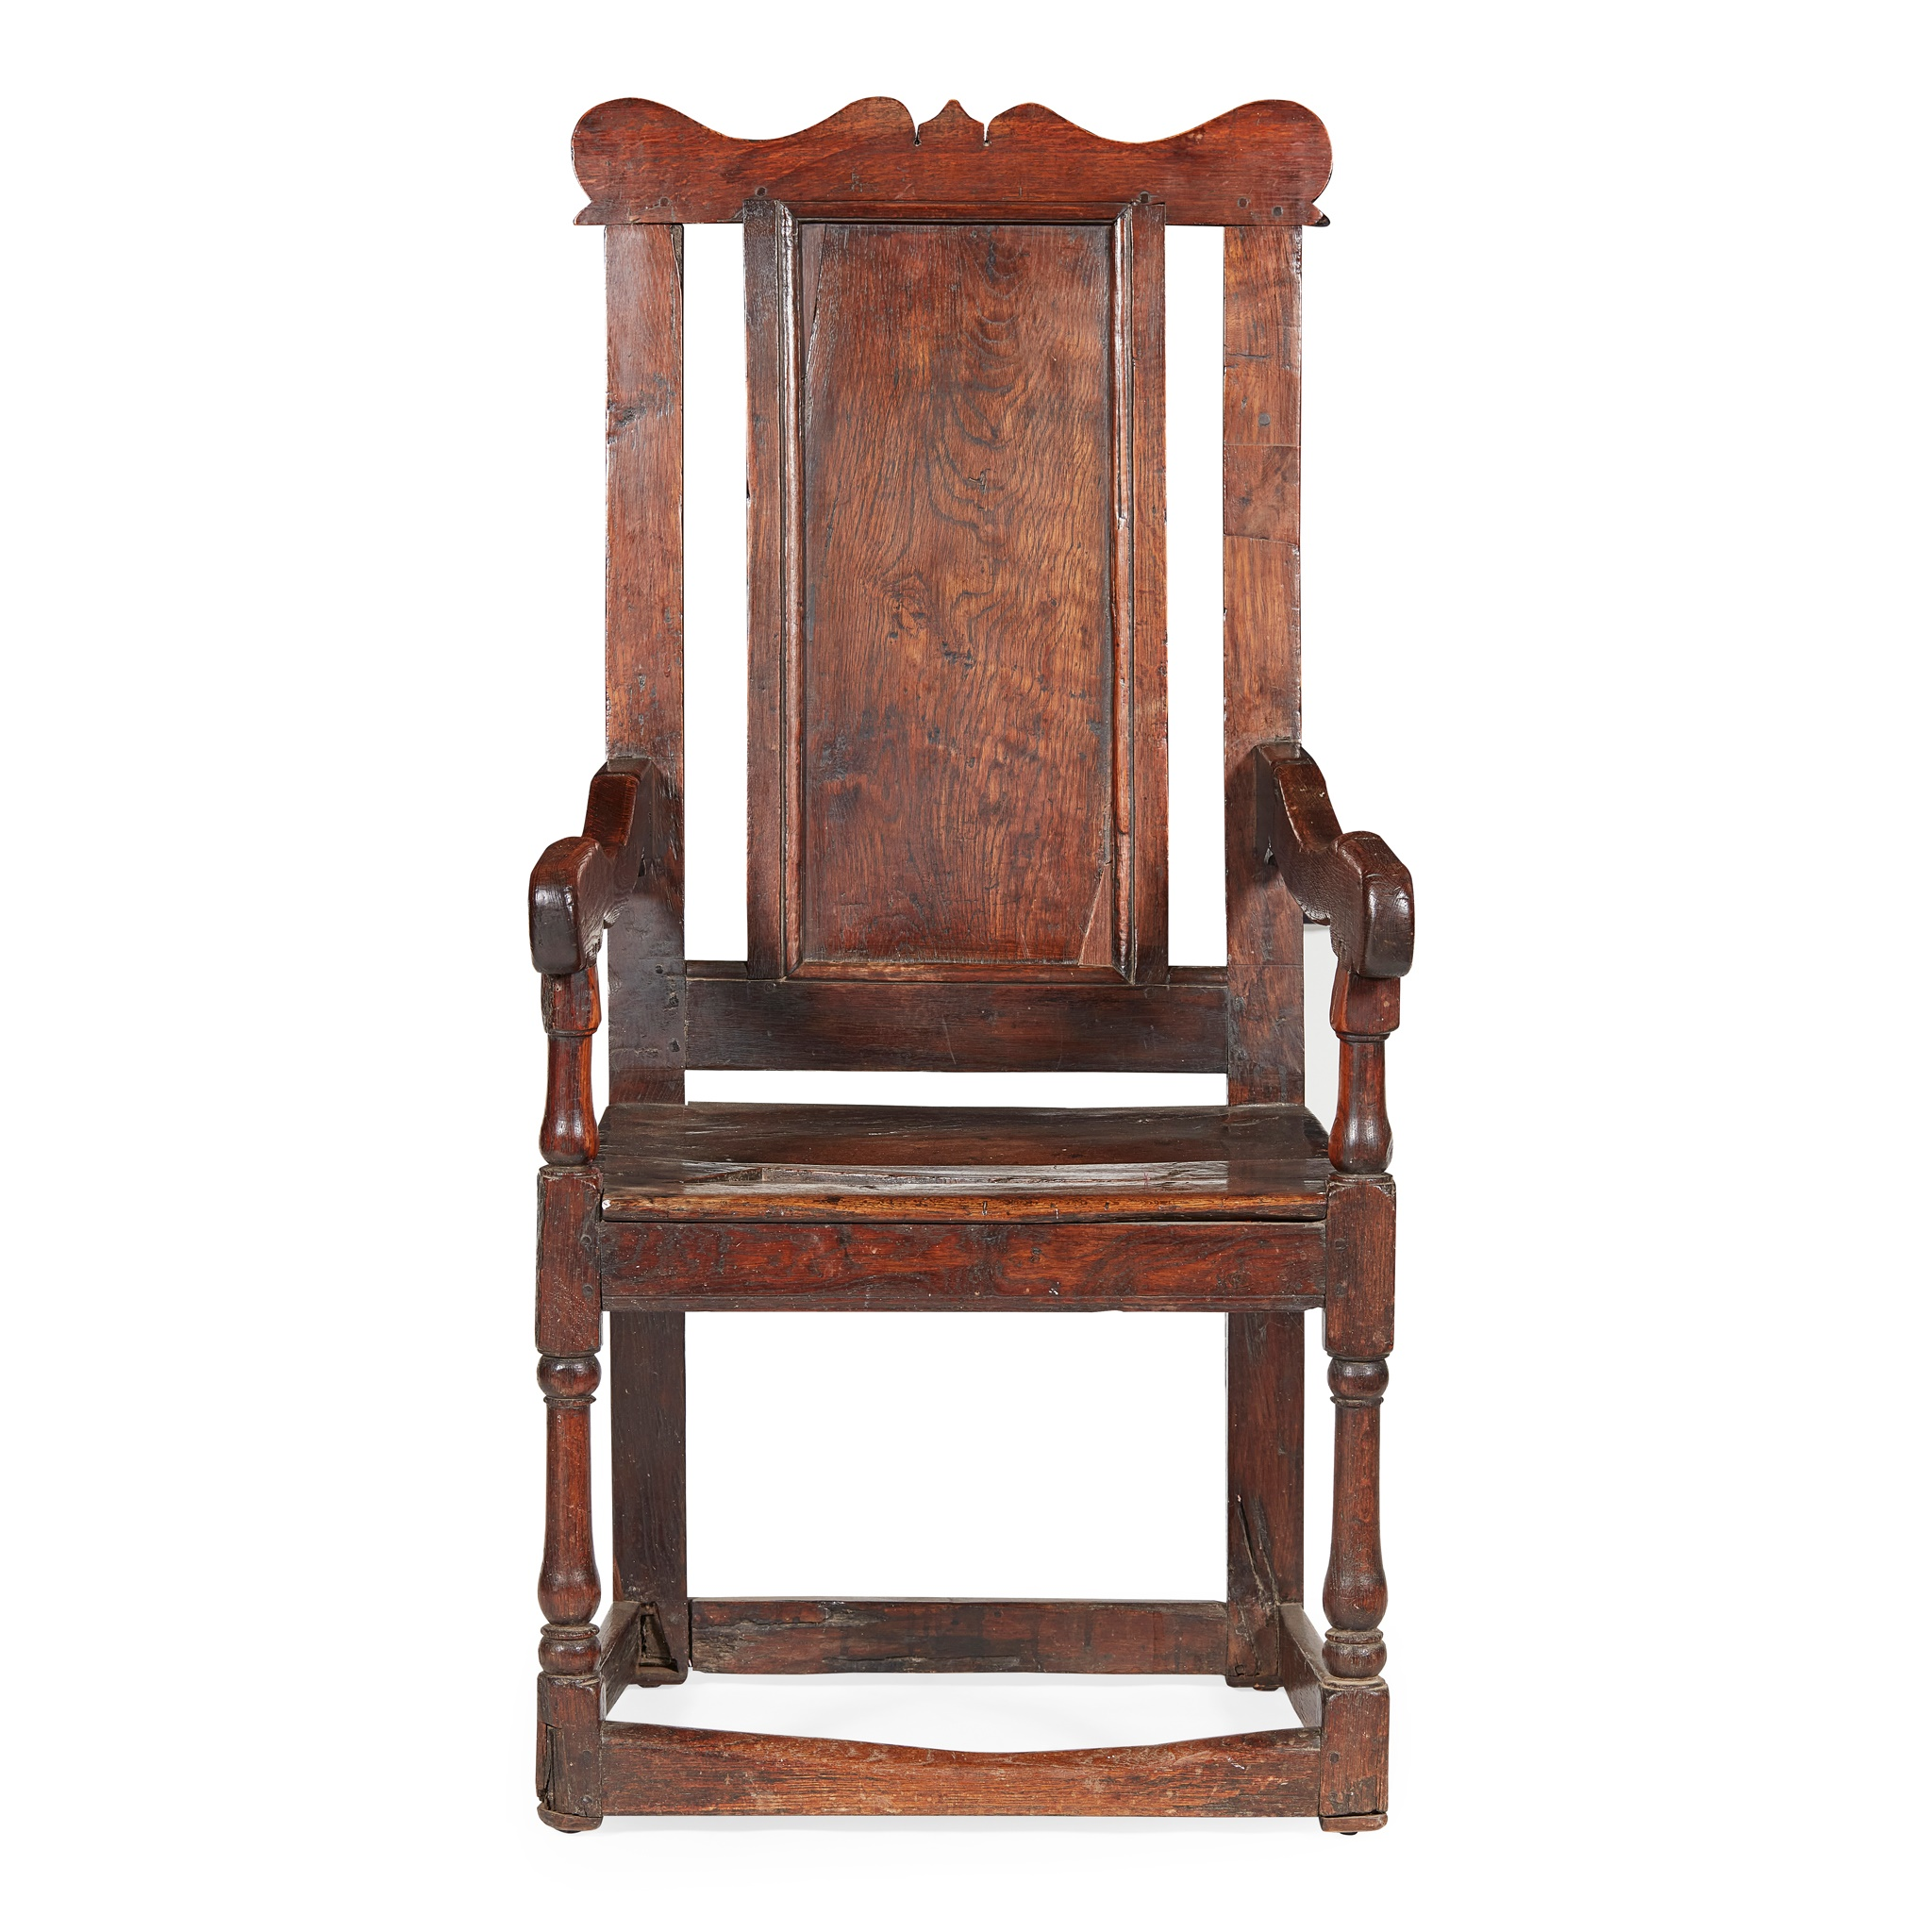 SCOTTISH PROVINCIAL OAK ARMCHAIR EARLY 18TH CENTURY - Image 2 of 2